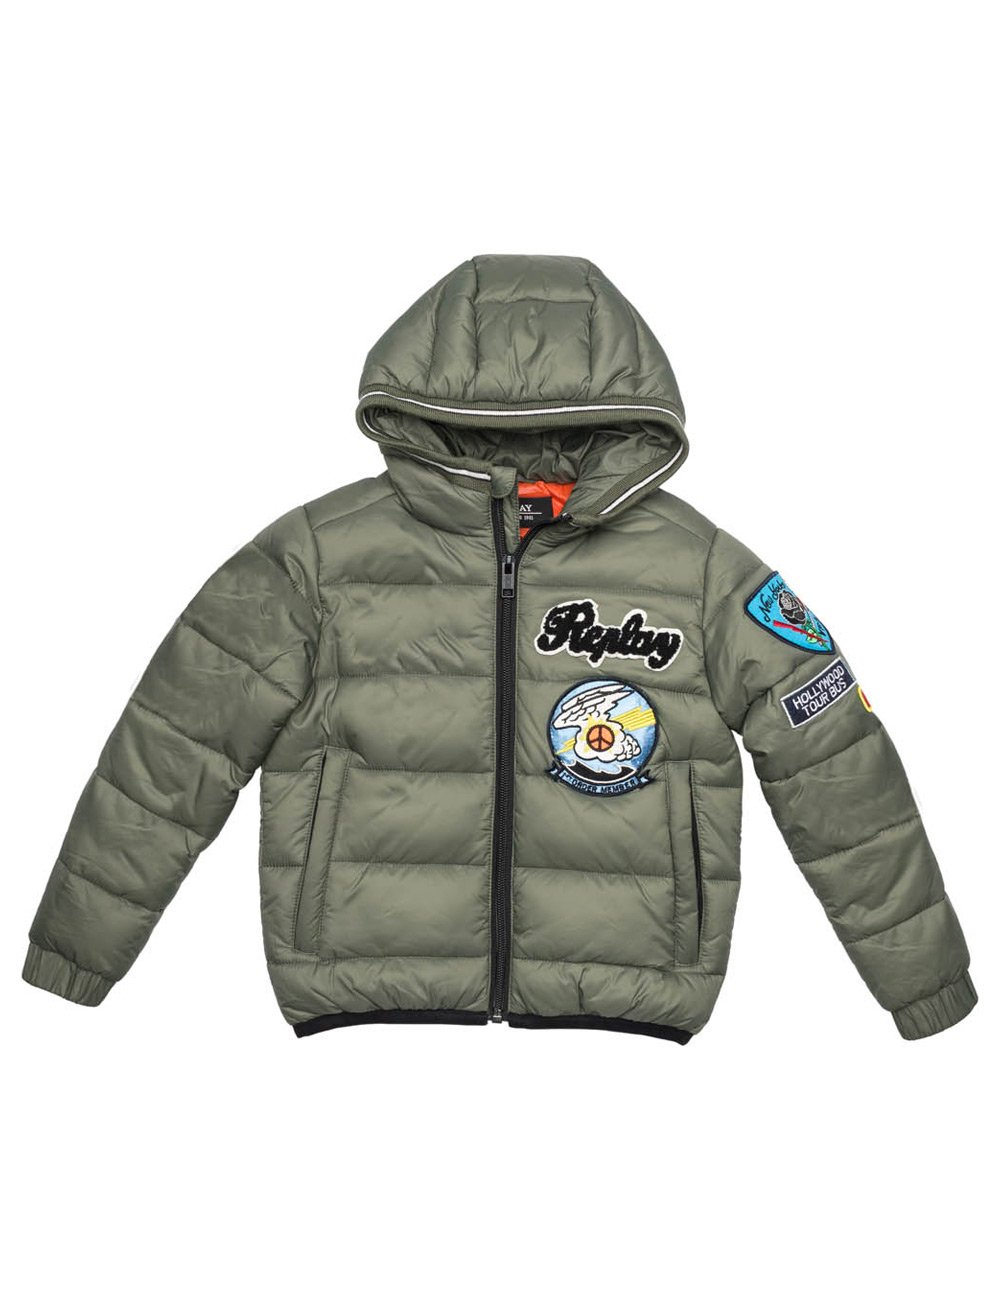 Replay Boy's Khaki Quilted Jacket With Patches in Size 6 Years Green